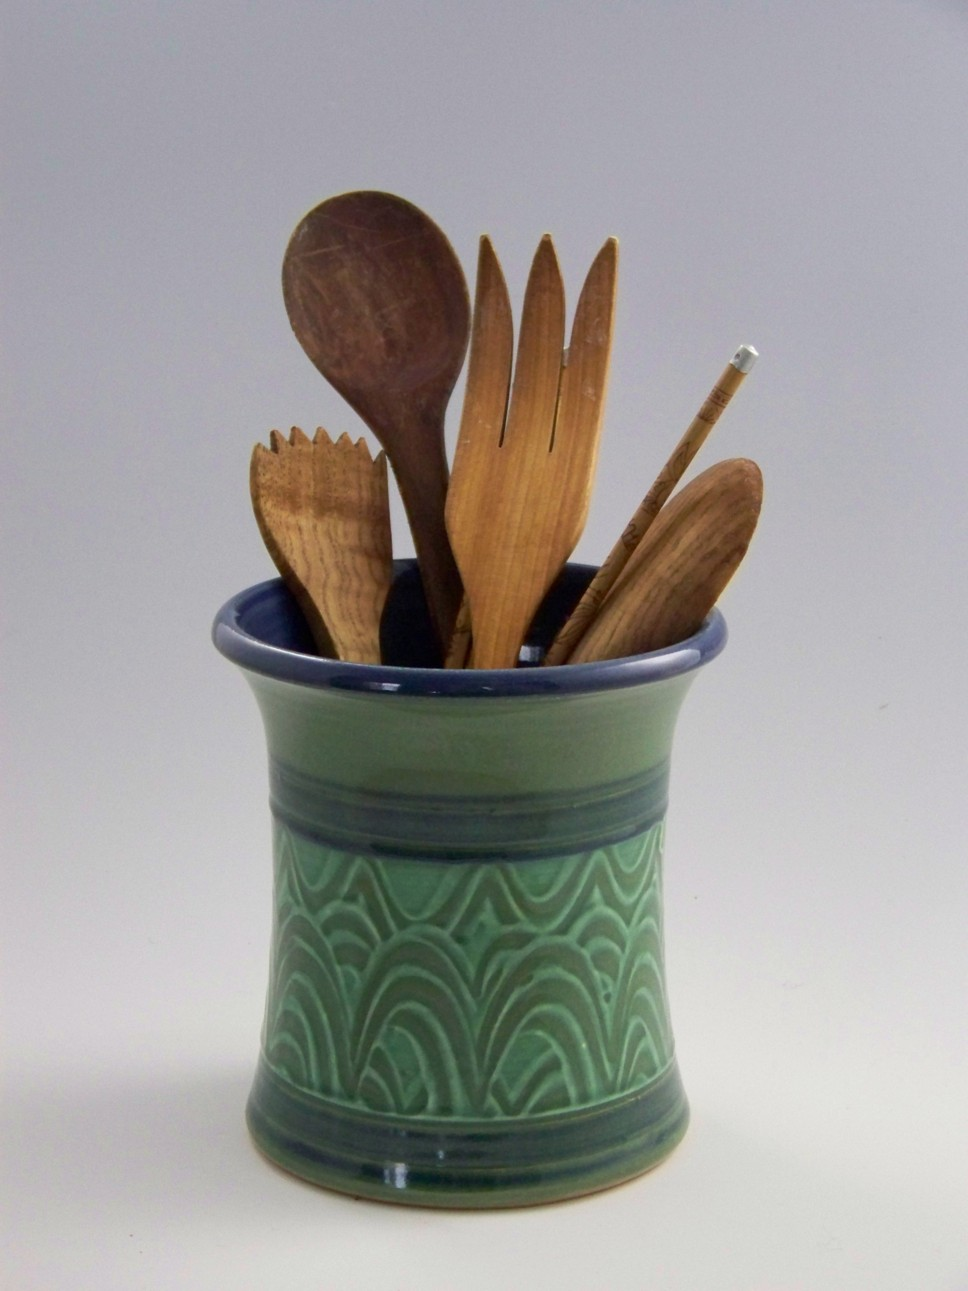 green utensil crop 42.jpg